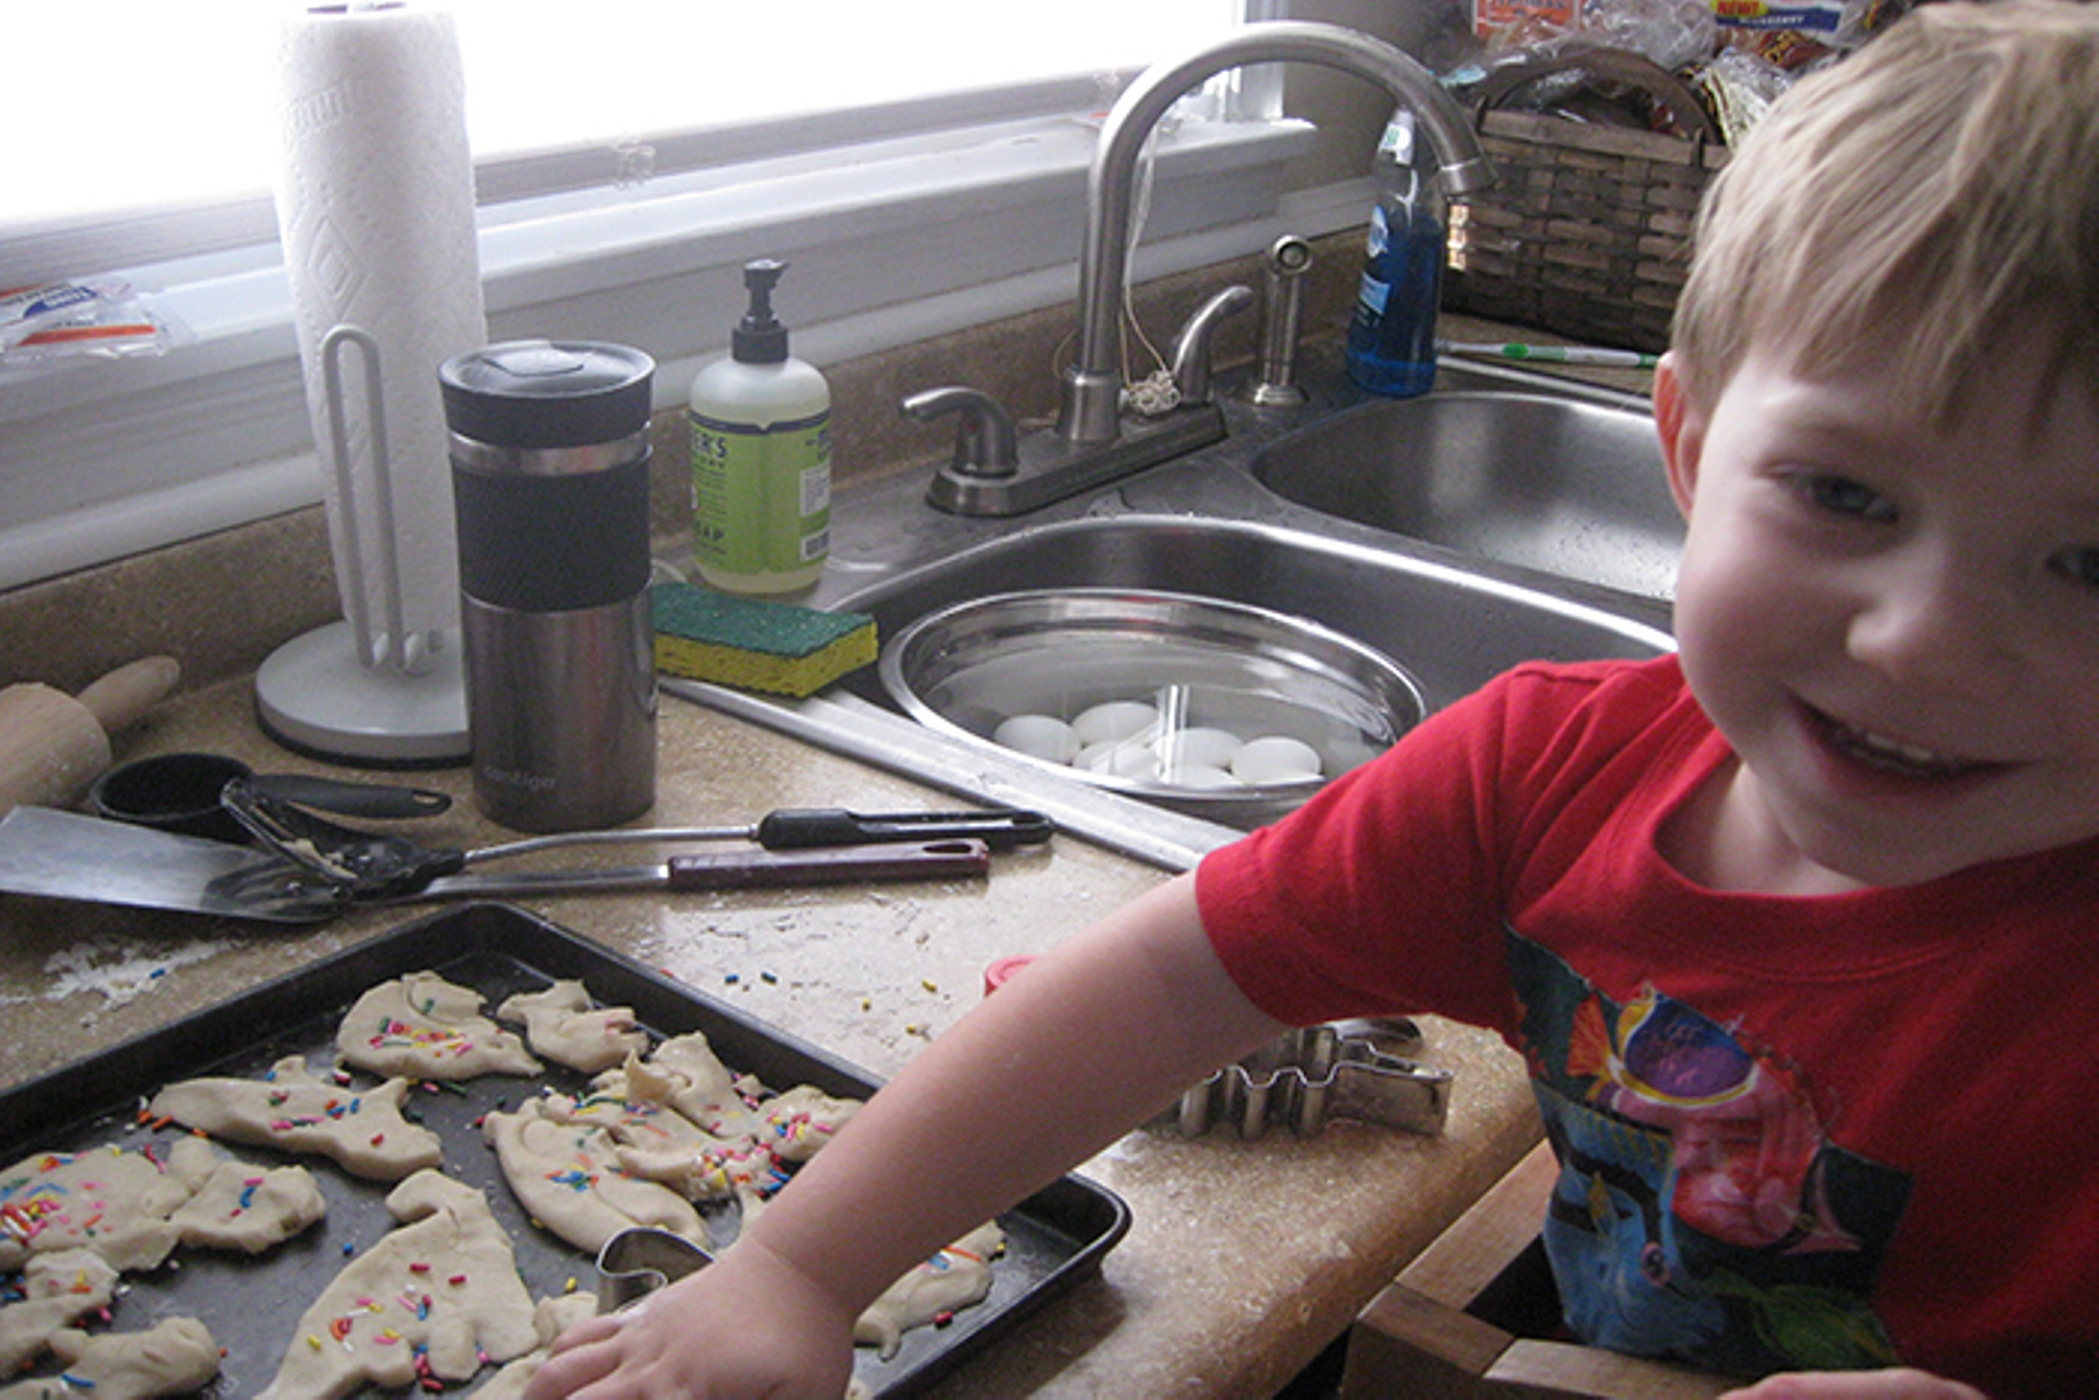 Smiling toddler stands at a busy kitchen surface his hand on an uncooked biscuit on the tray in front of him